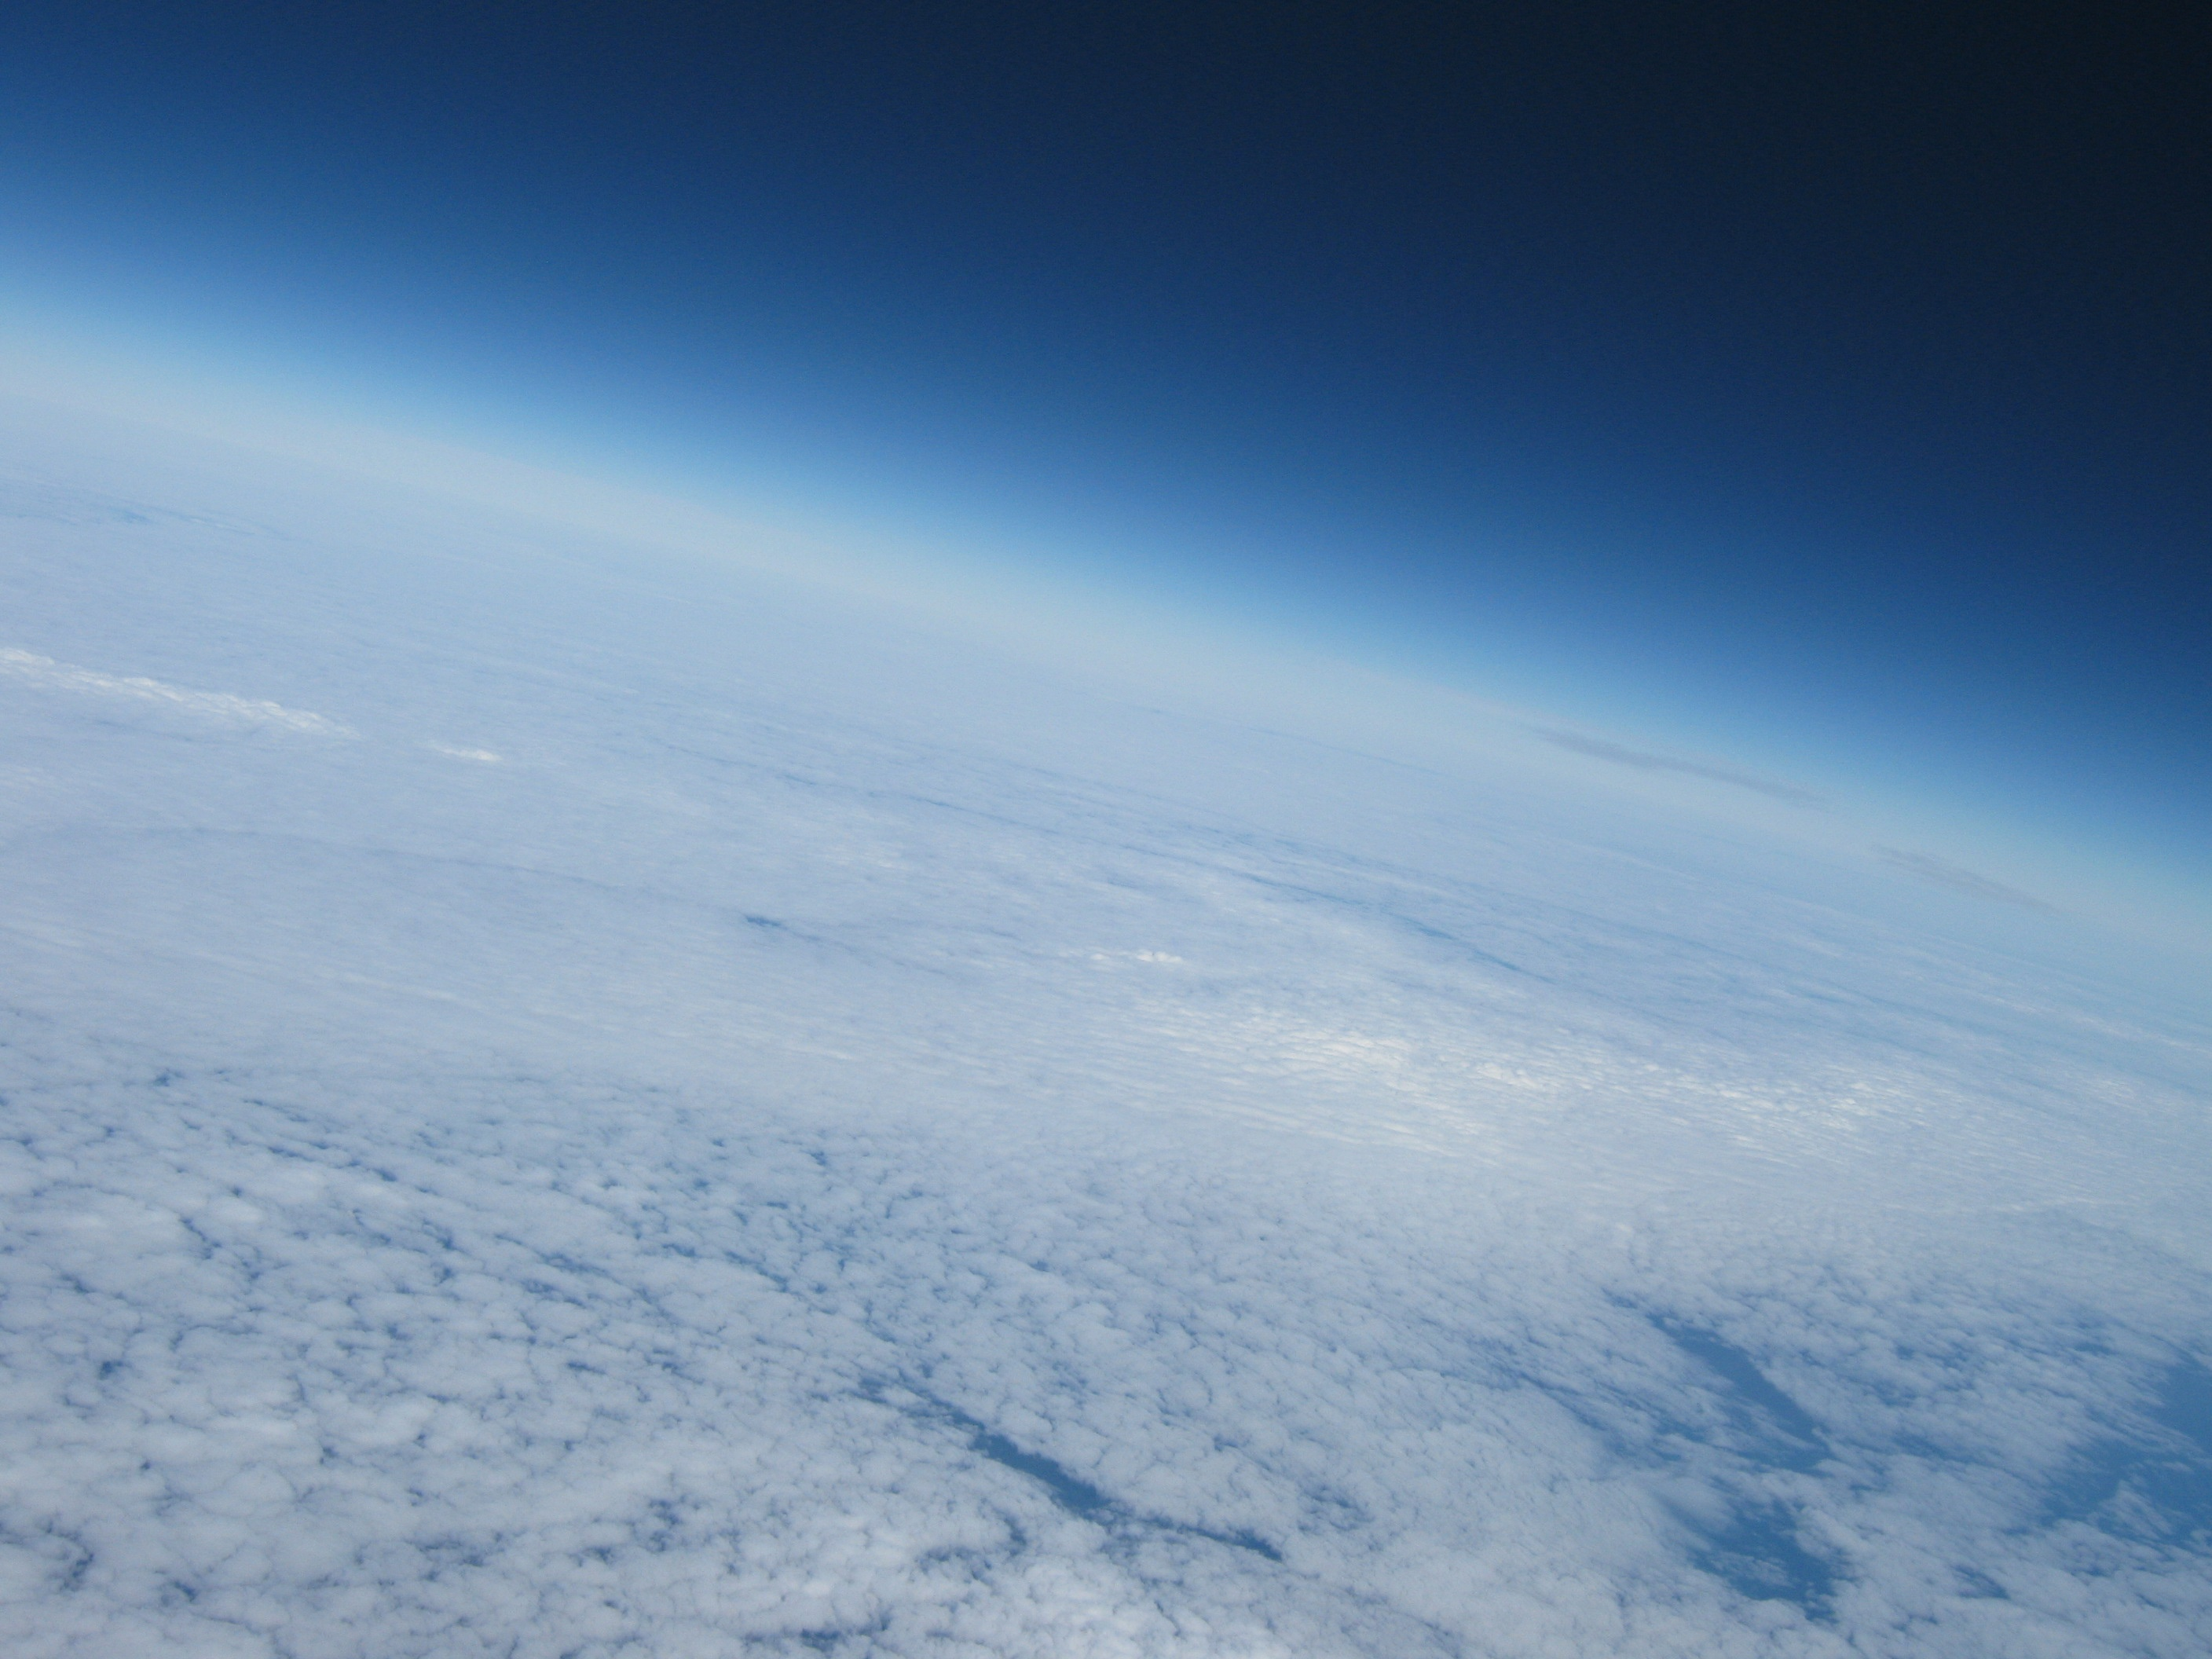 Curvature of the Earth from near the flight peak